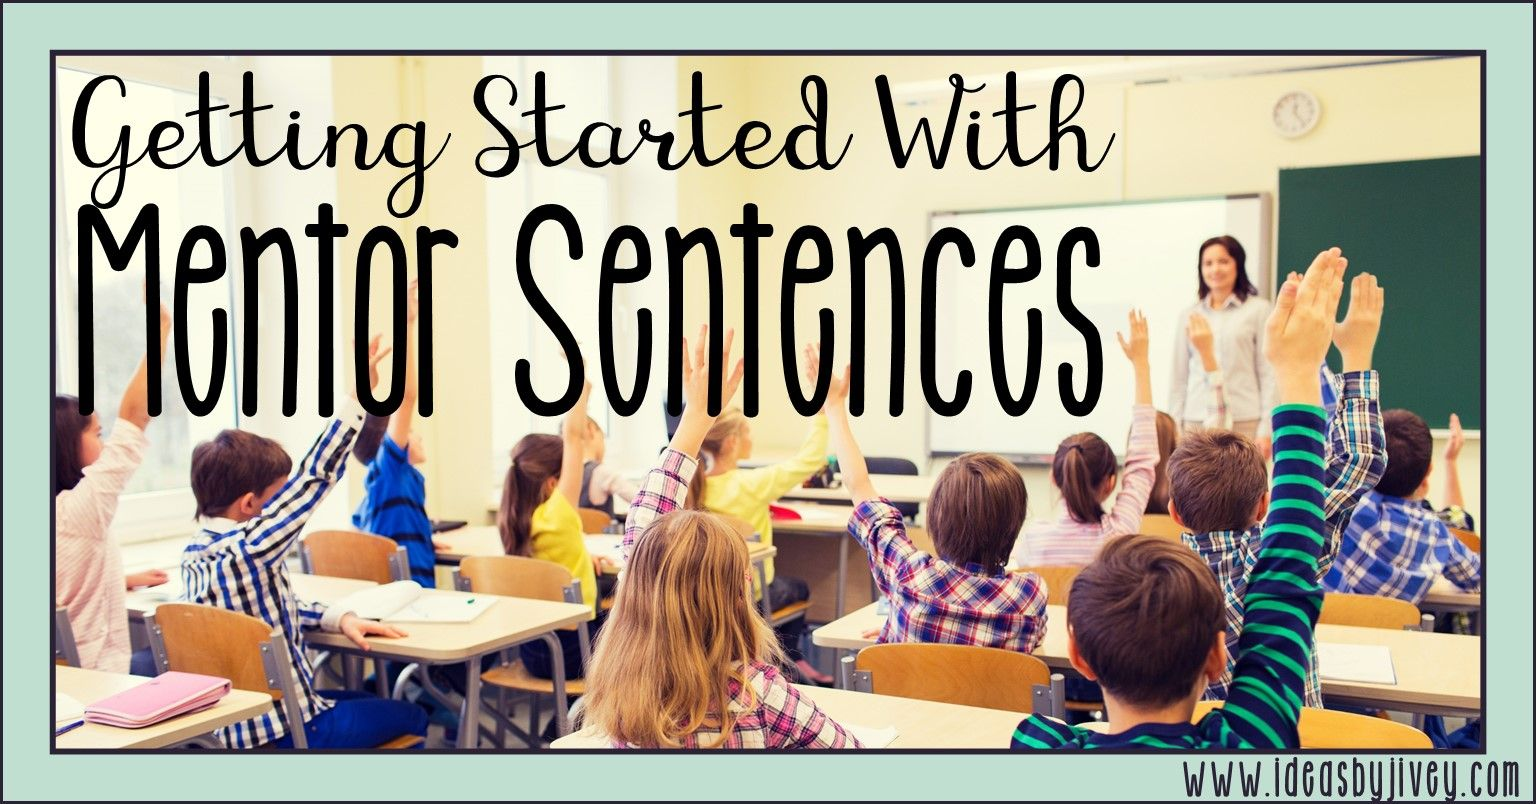 Getting Started With Mentor Sentences